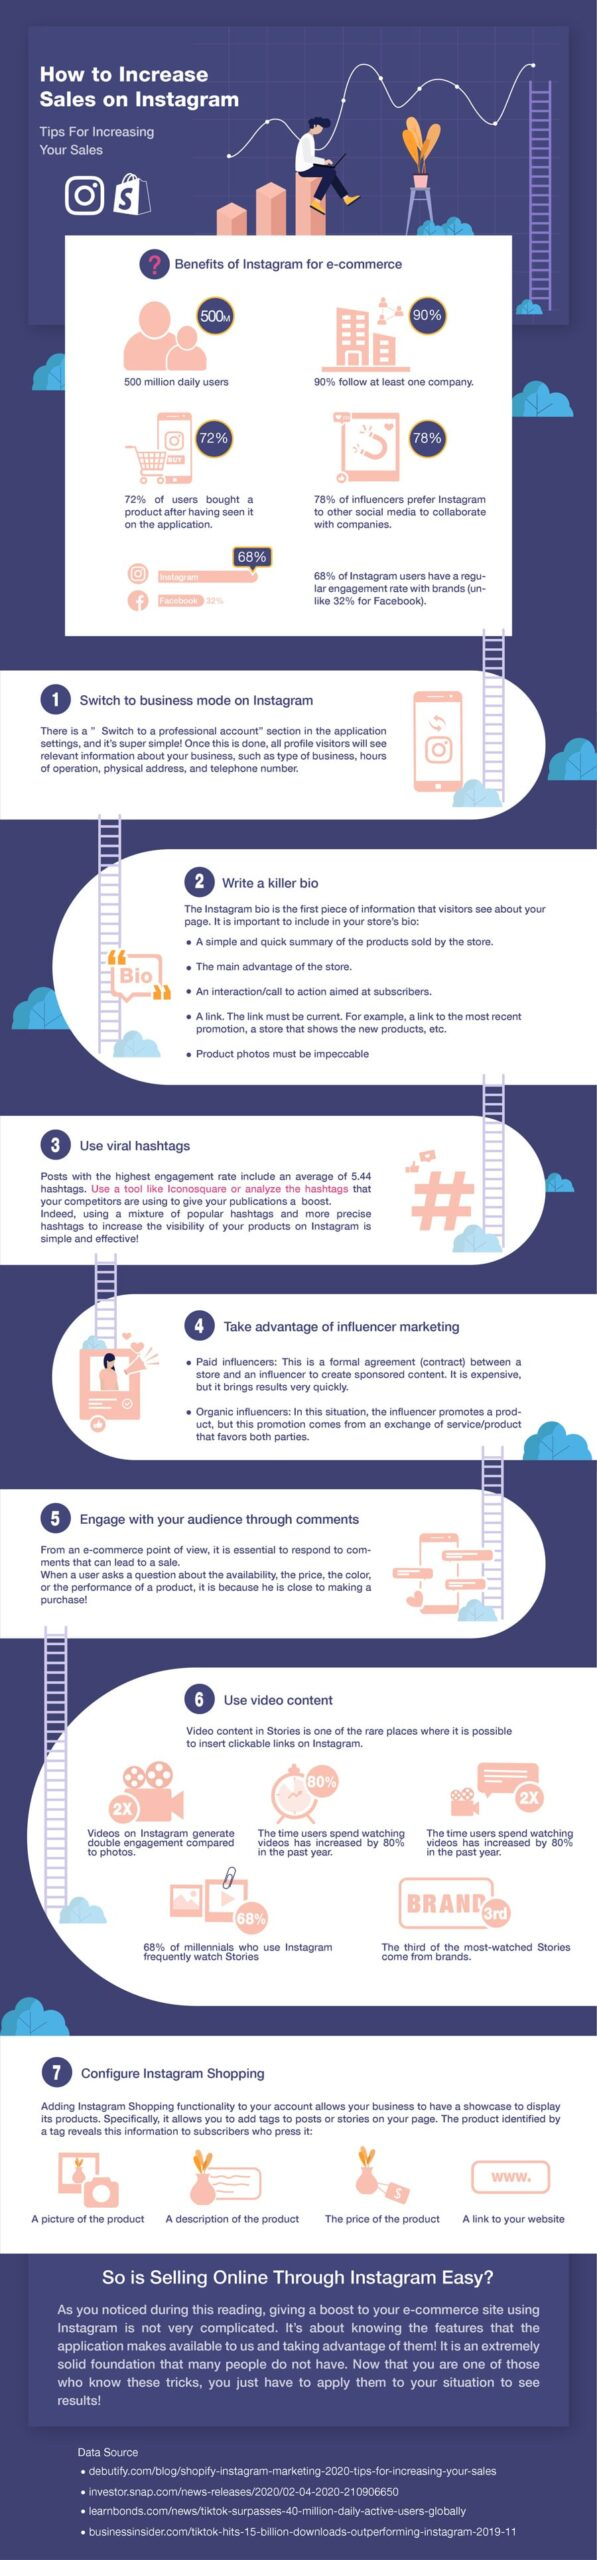 5 Proven Methods to Increase the ROI of Instagram Marketing for 2022 (Infographic)